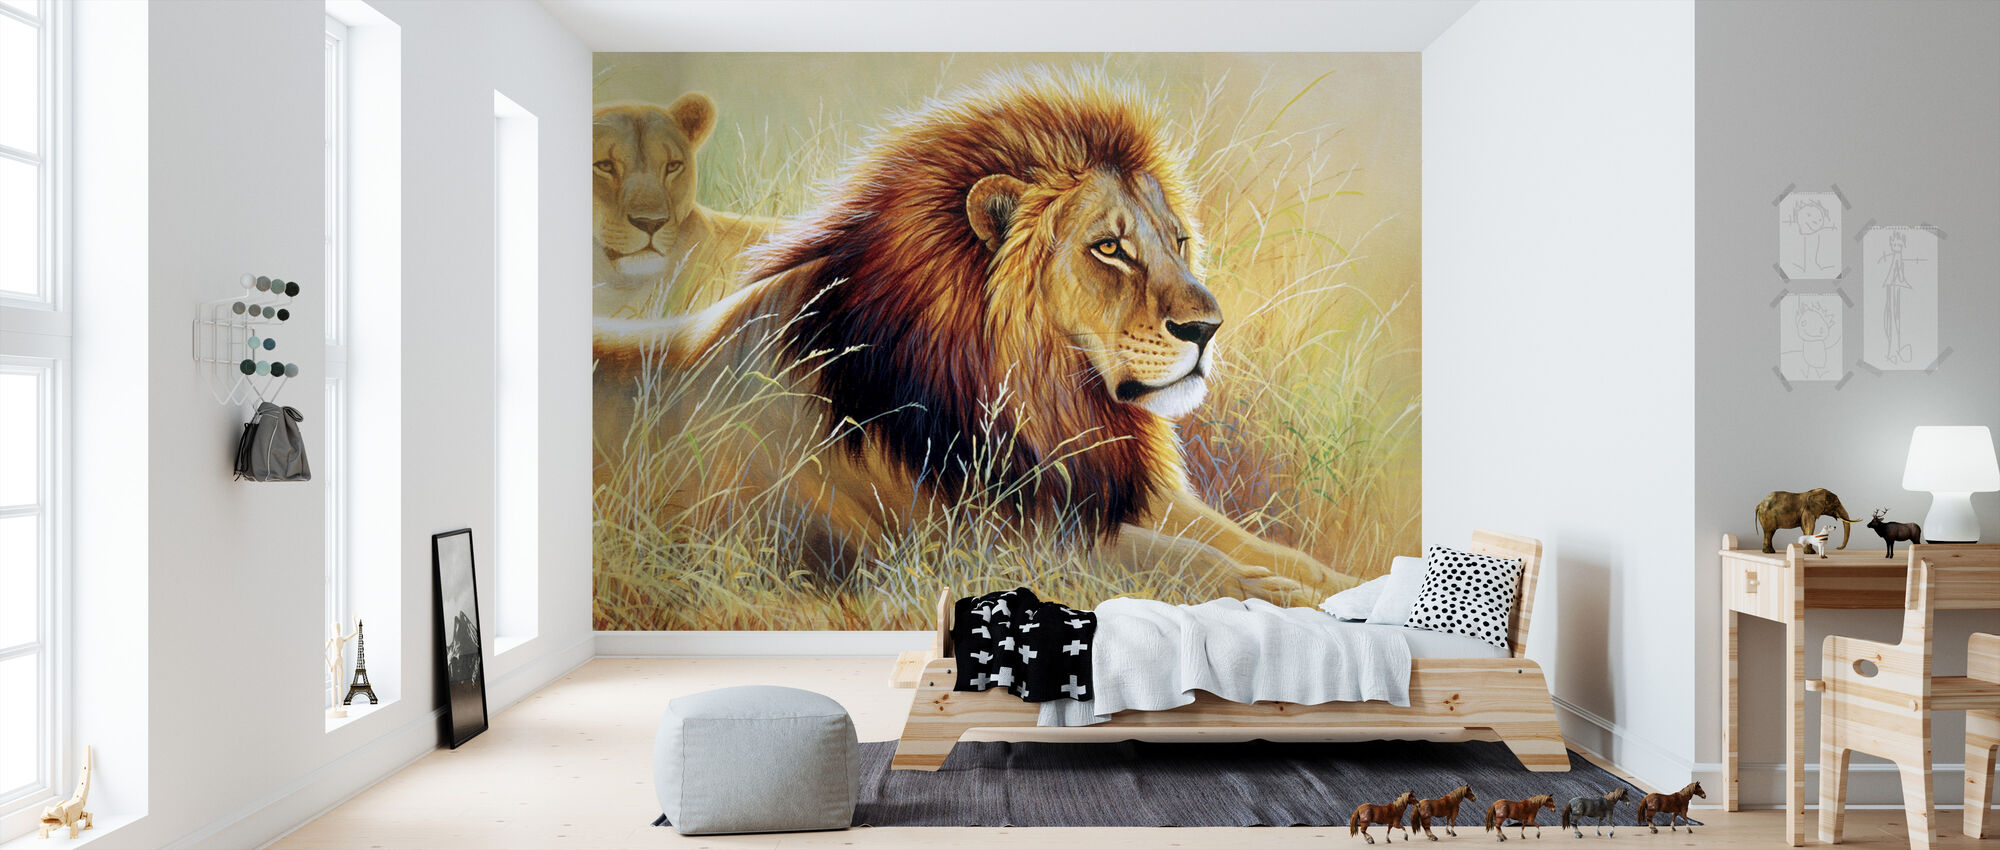 Lion and Lioness - Wallpaper - Kids Room